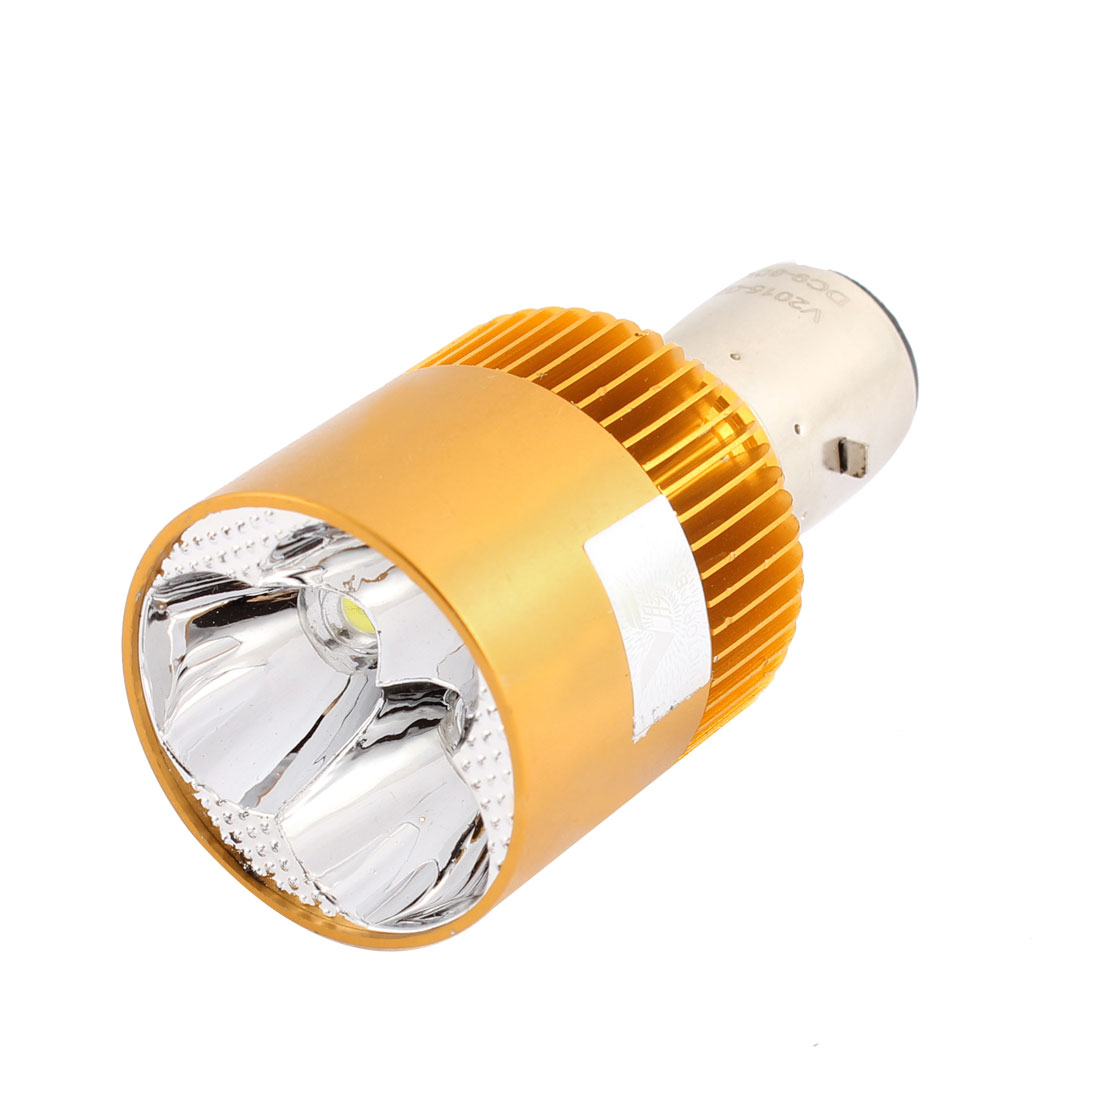 Motorcycle Gold Tone Metal Shell 3 White LED Decorative Light Lamp